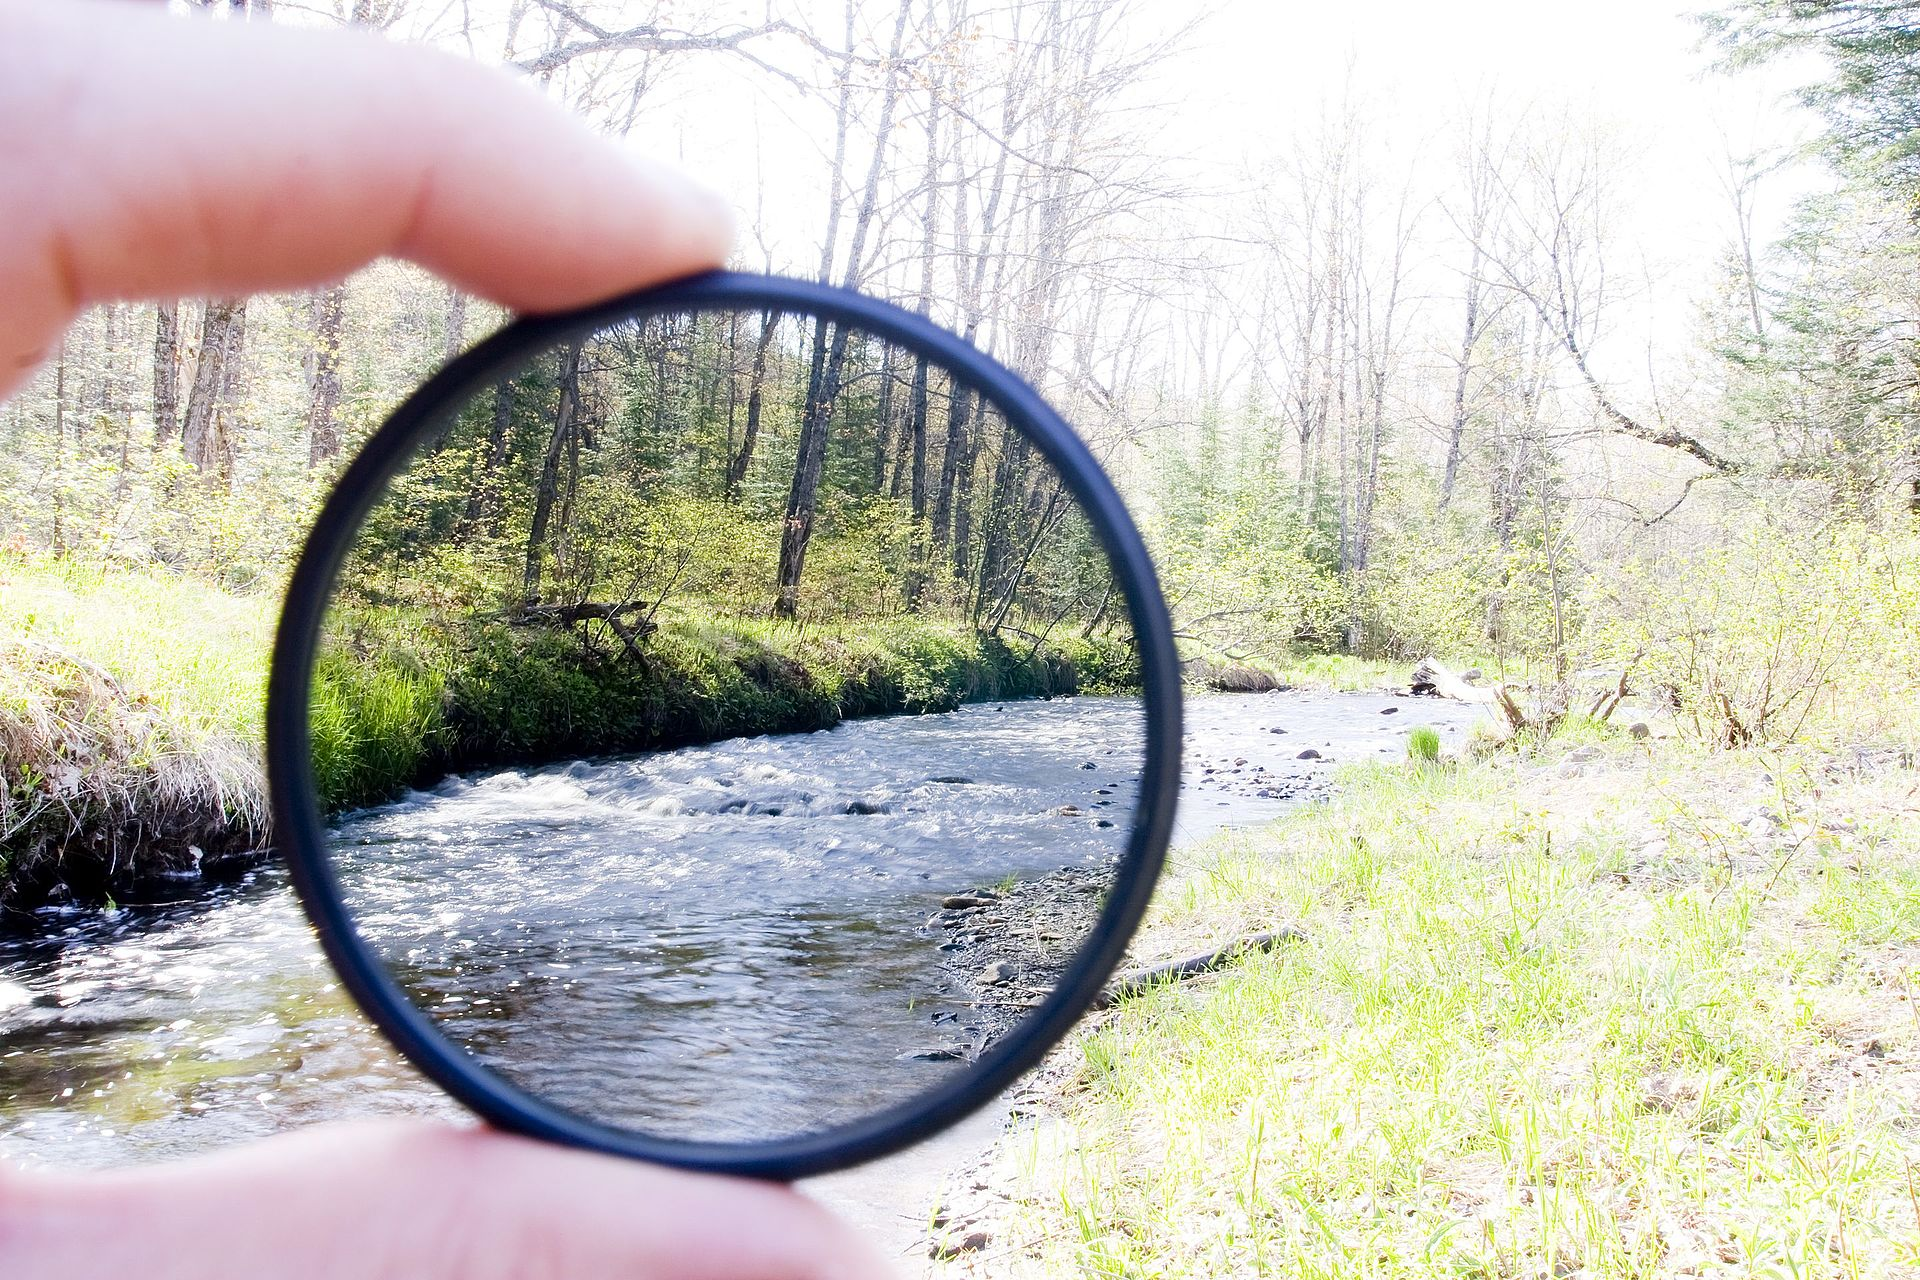 A neutral density filter. The photo was exposed for the light passing through the ND filter. (Source: Wikipedia. By Robert Emperley from Strasbourg, Alsace, France - silver falls 21Uploaded by NotFromUtrecht, CC BY-SA 2.0, https://commons.wikimedia.org/w/index.php?curid=14911371)